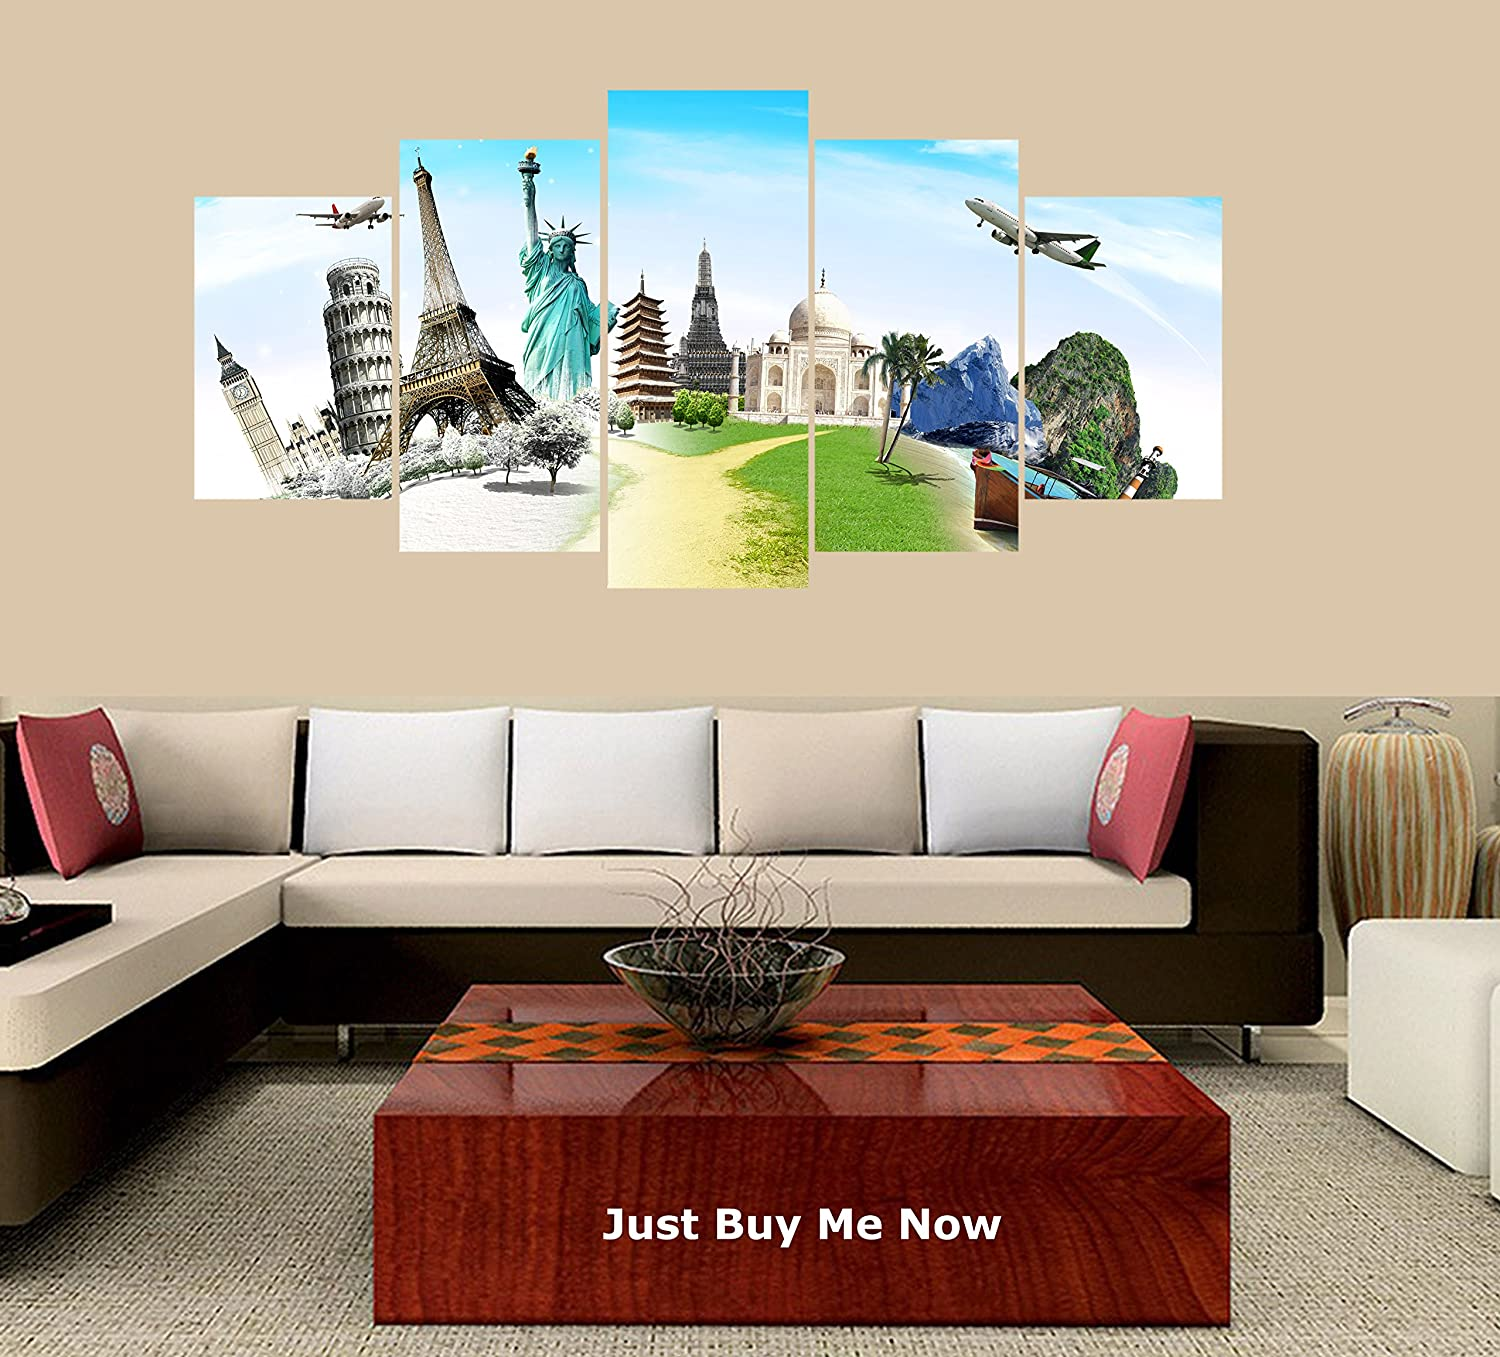 PEACOCK JEWELS Premium Quality Canvas Printed Wall Art Poster 5 Pieces/5 Pannel Wall Decor Wonders of The World Map Painting, Home Decor Pictures - with Wooden Frame